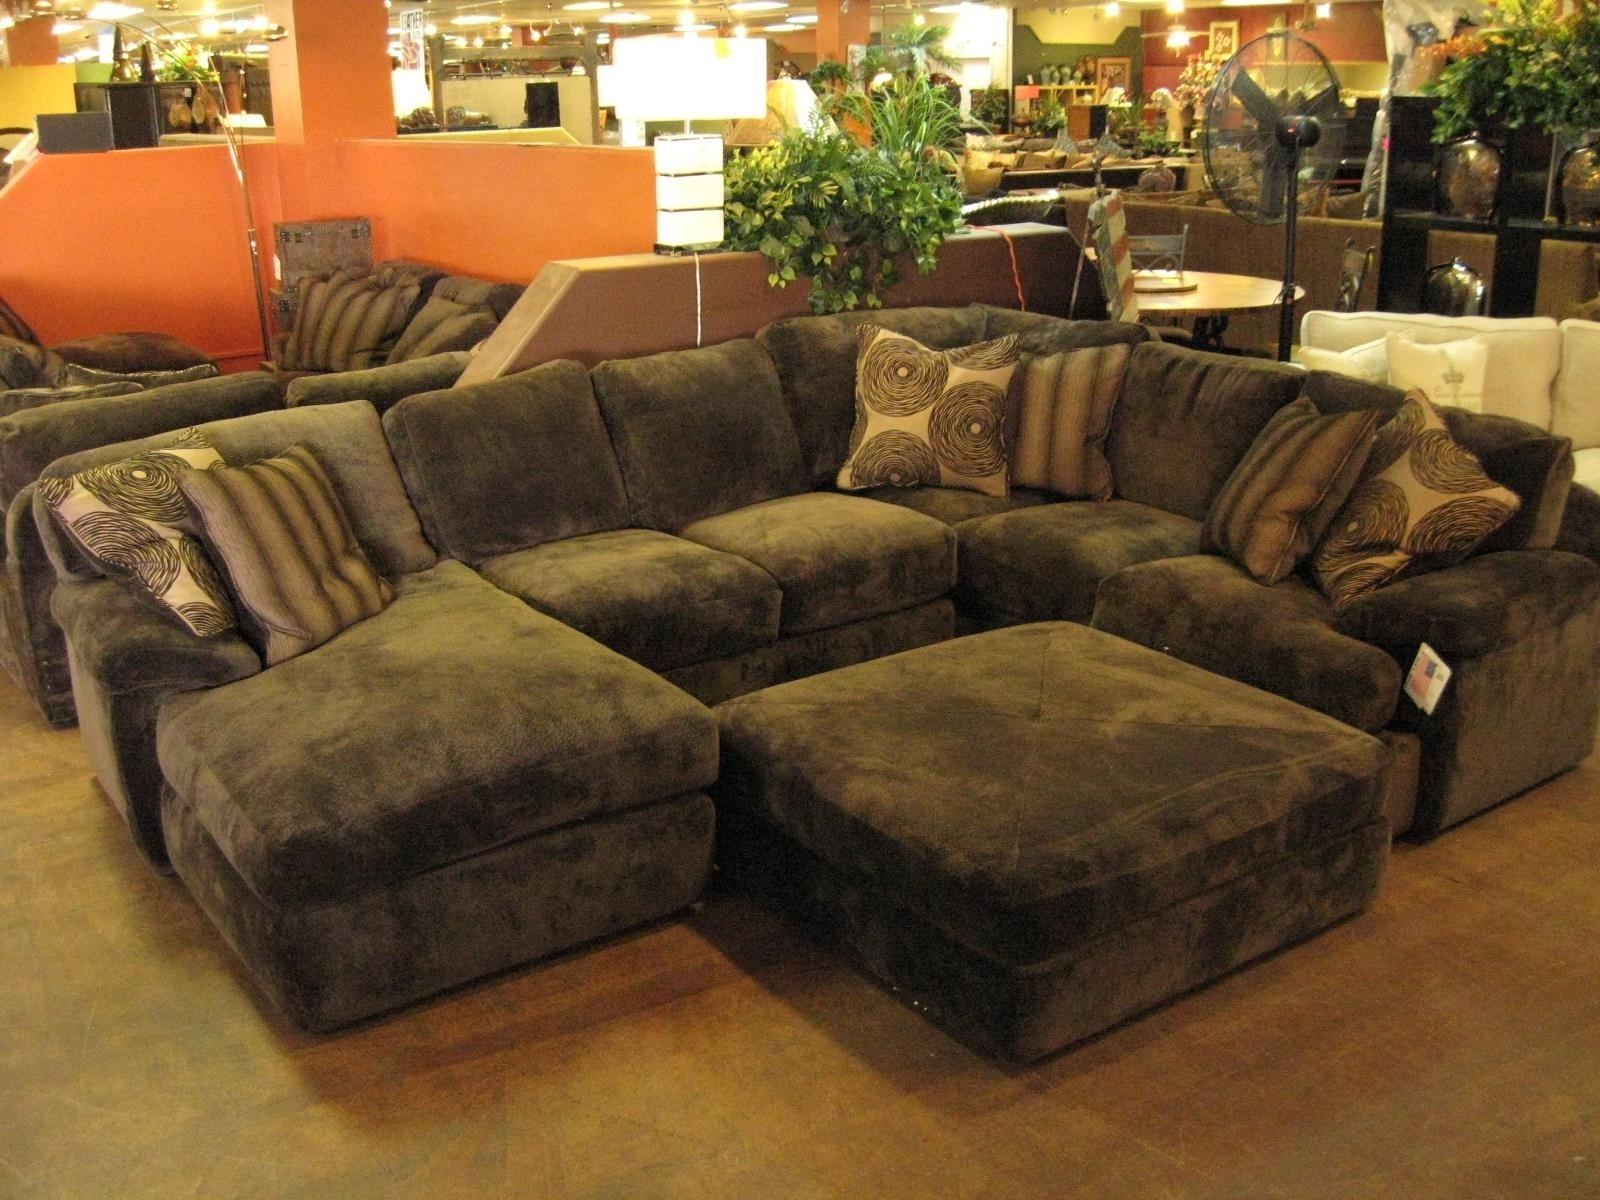 Popular Long Sectional Sofas With Chaise In Sofa : Large Sectional Sofa With Chaise Extra Large Sectional Sofa (View 12 of 20)